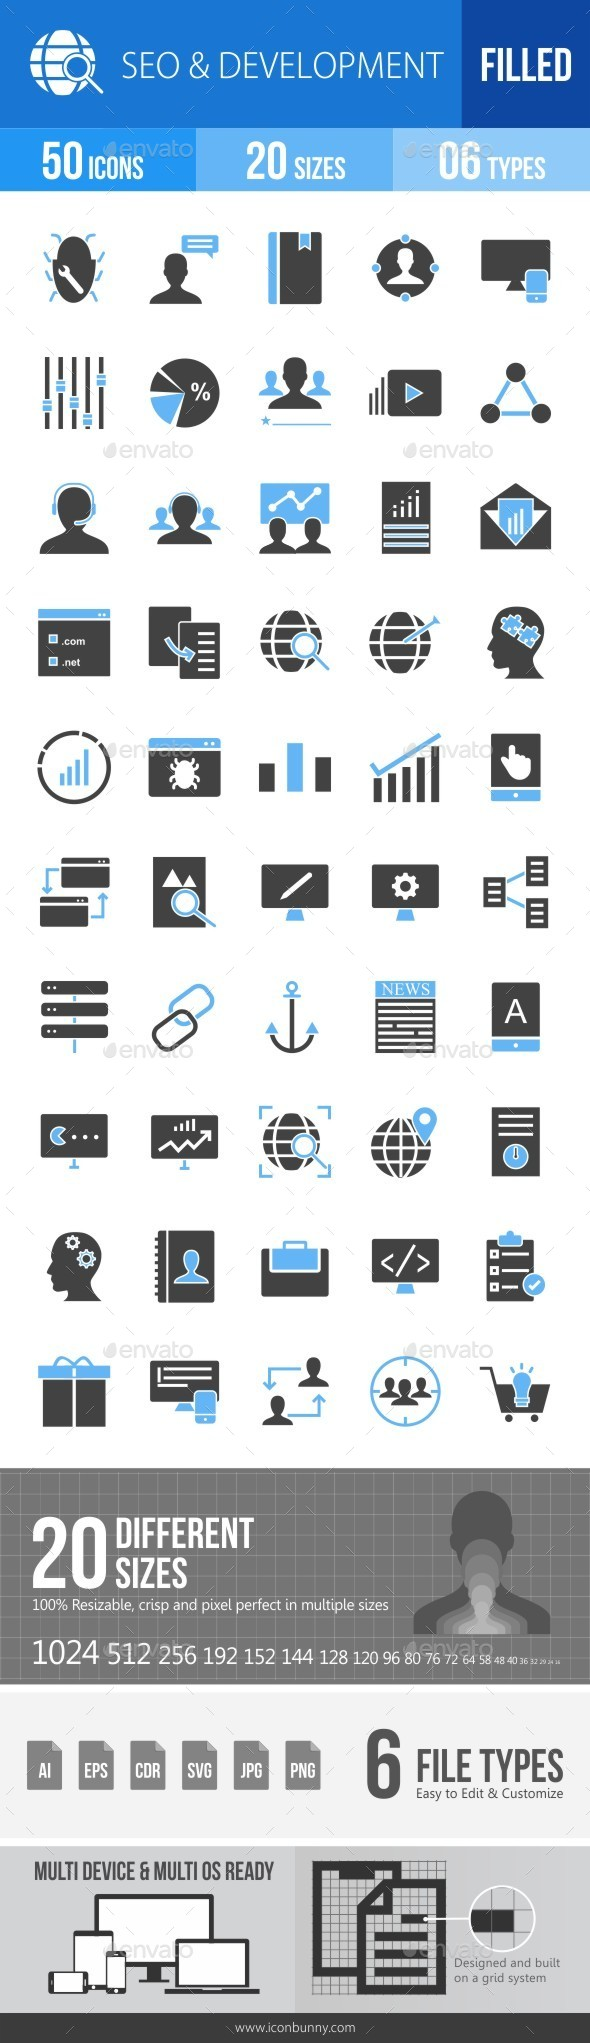 SEO & Development Services Blue & Black Icons - Icons